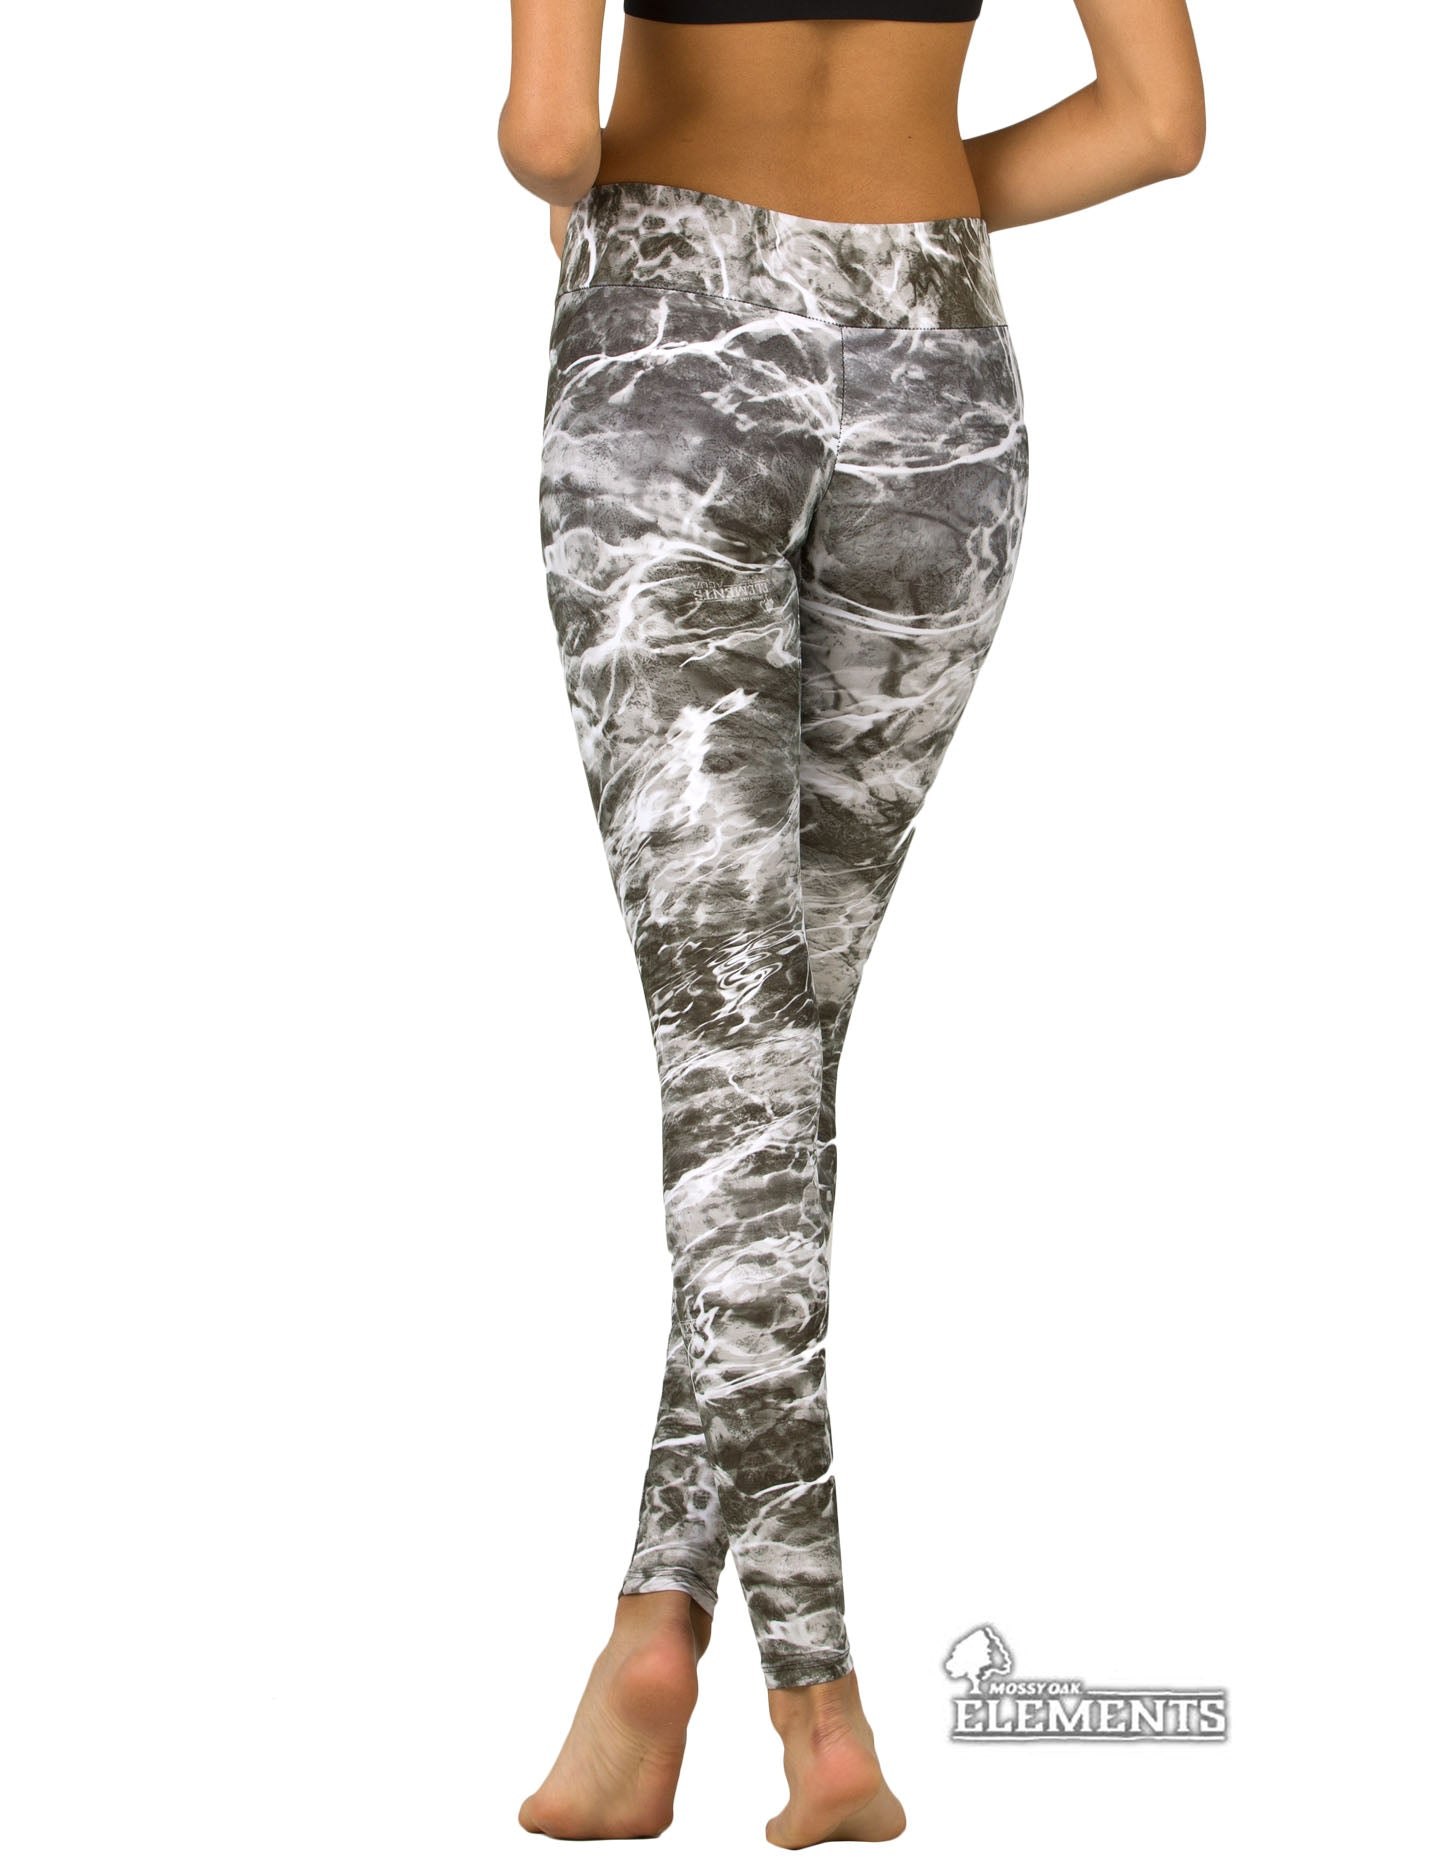 Apsara Leggings Low Waist Full Length, Mossy Oak Elements Manta